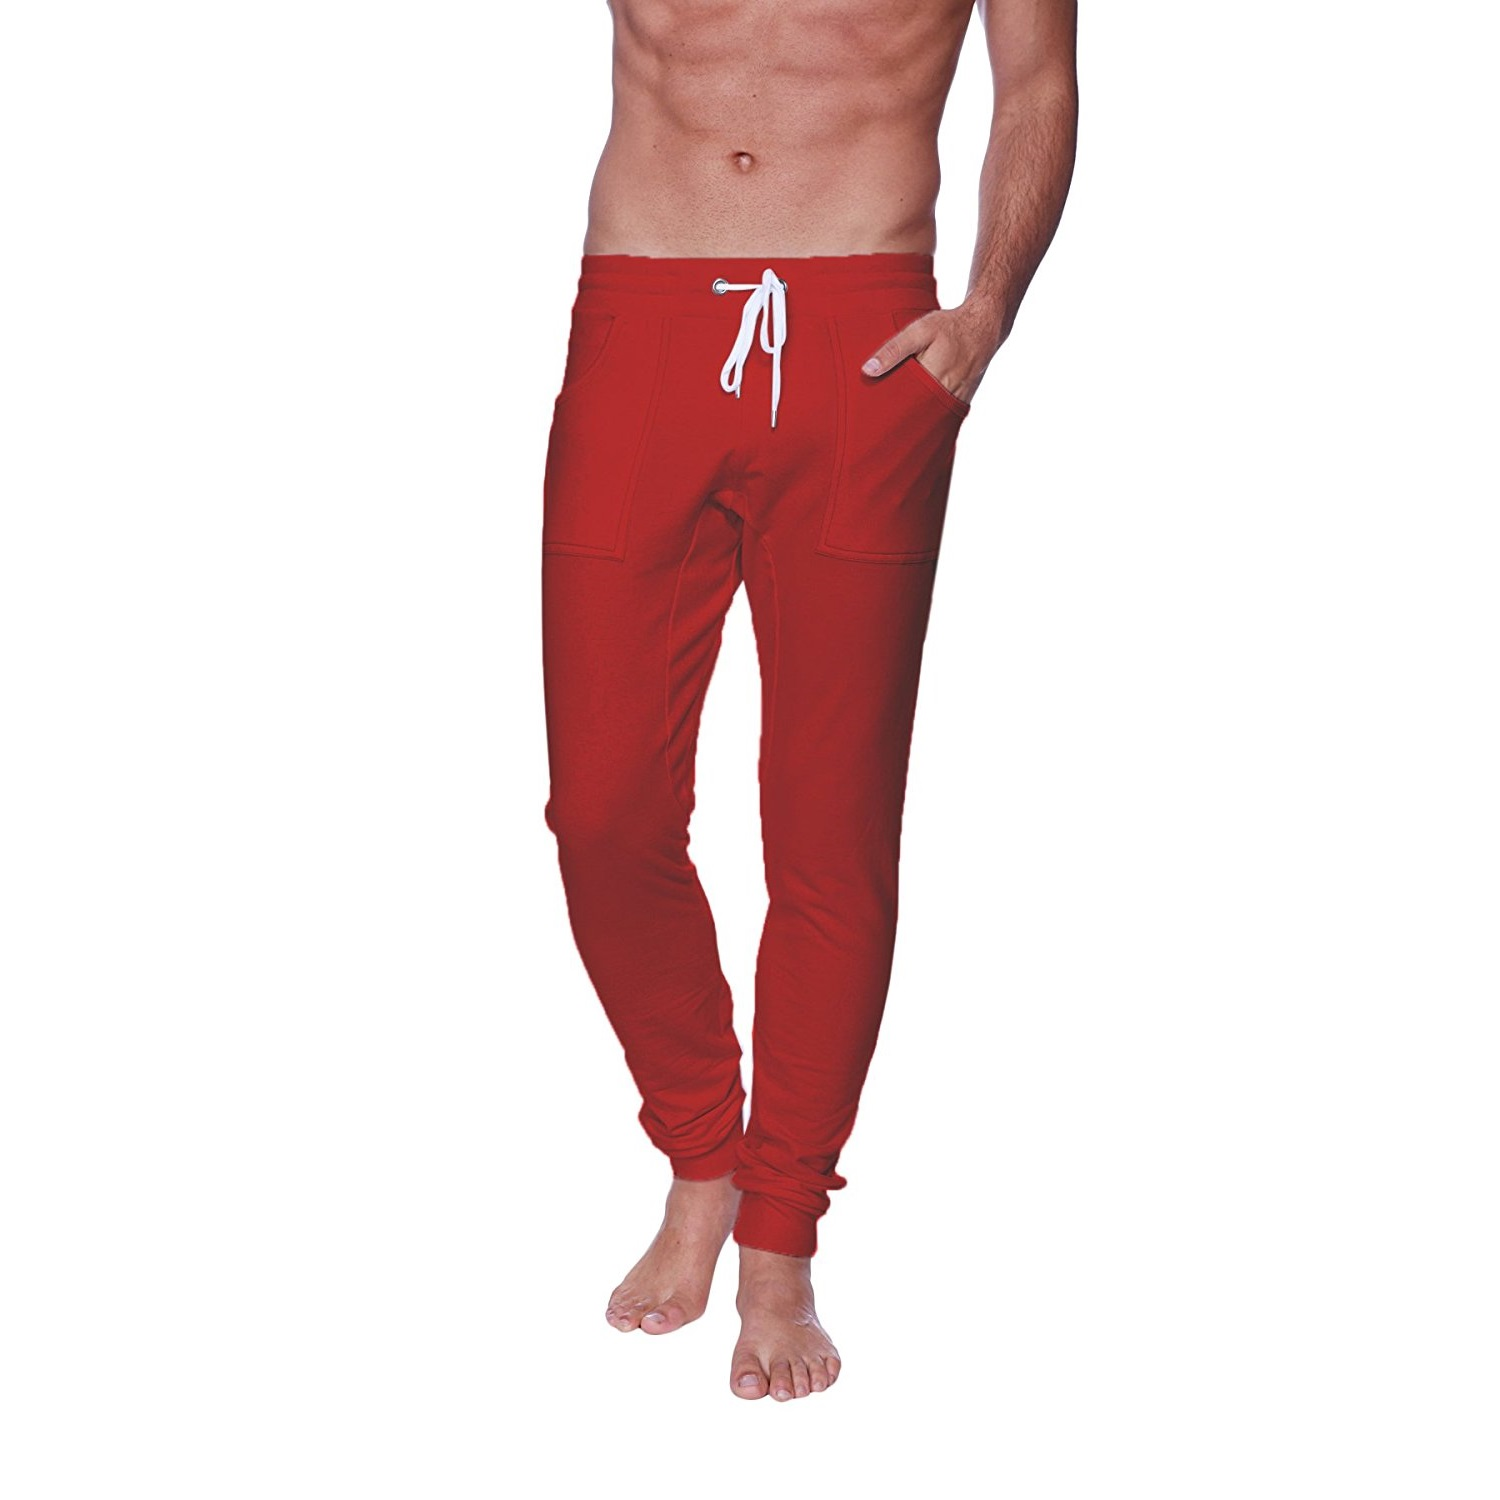 4-rth mens long cuffed jogger yoga pants cinnabar (red)